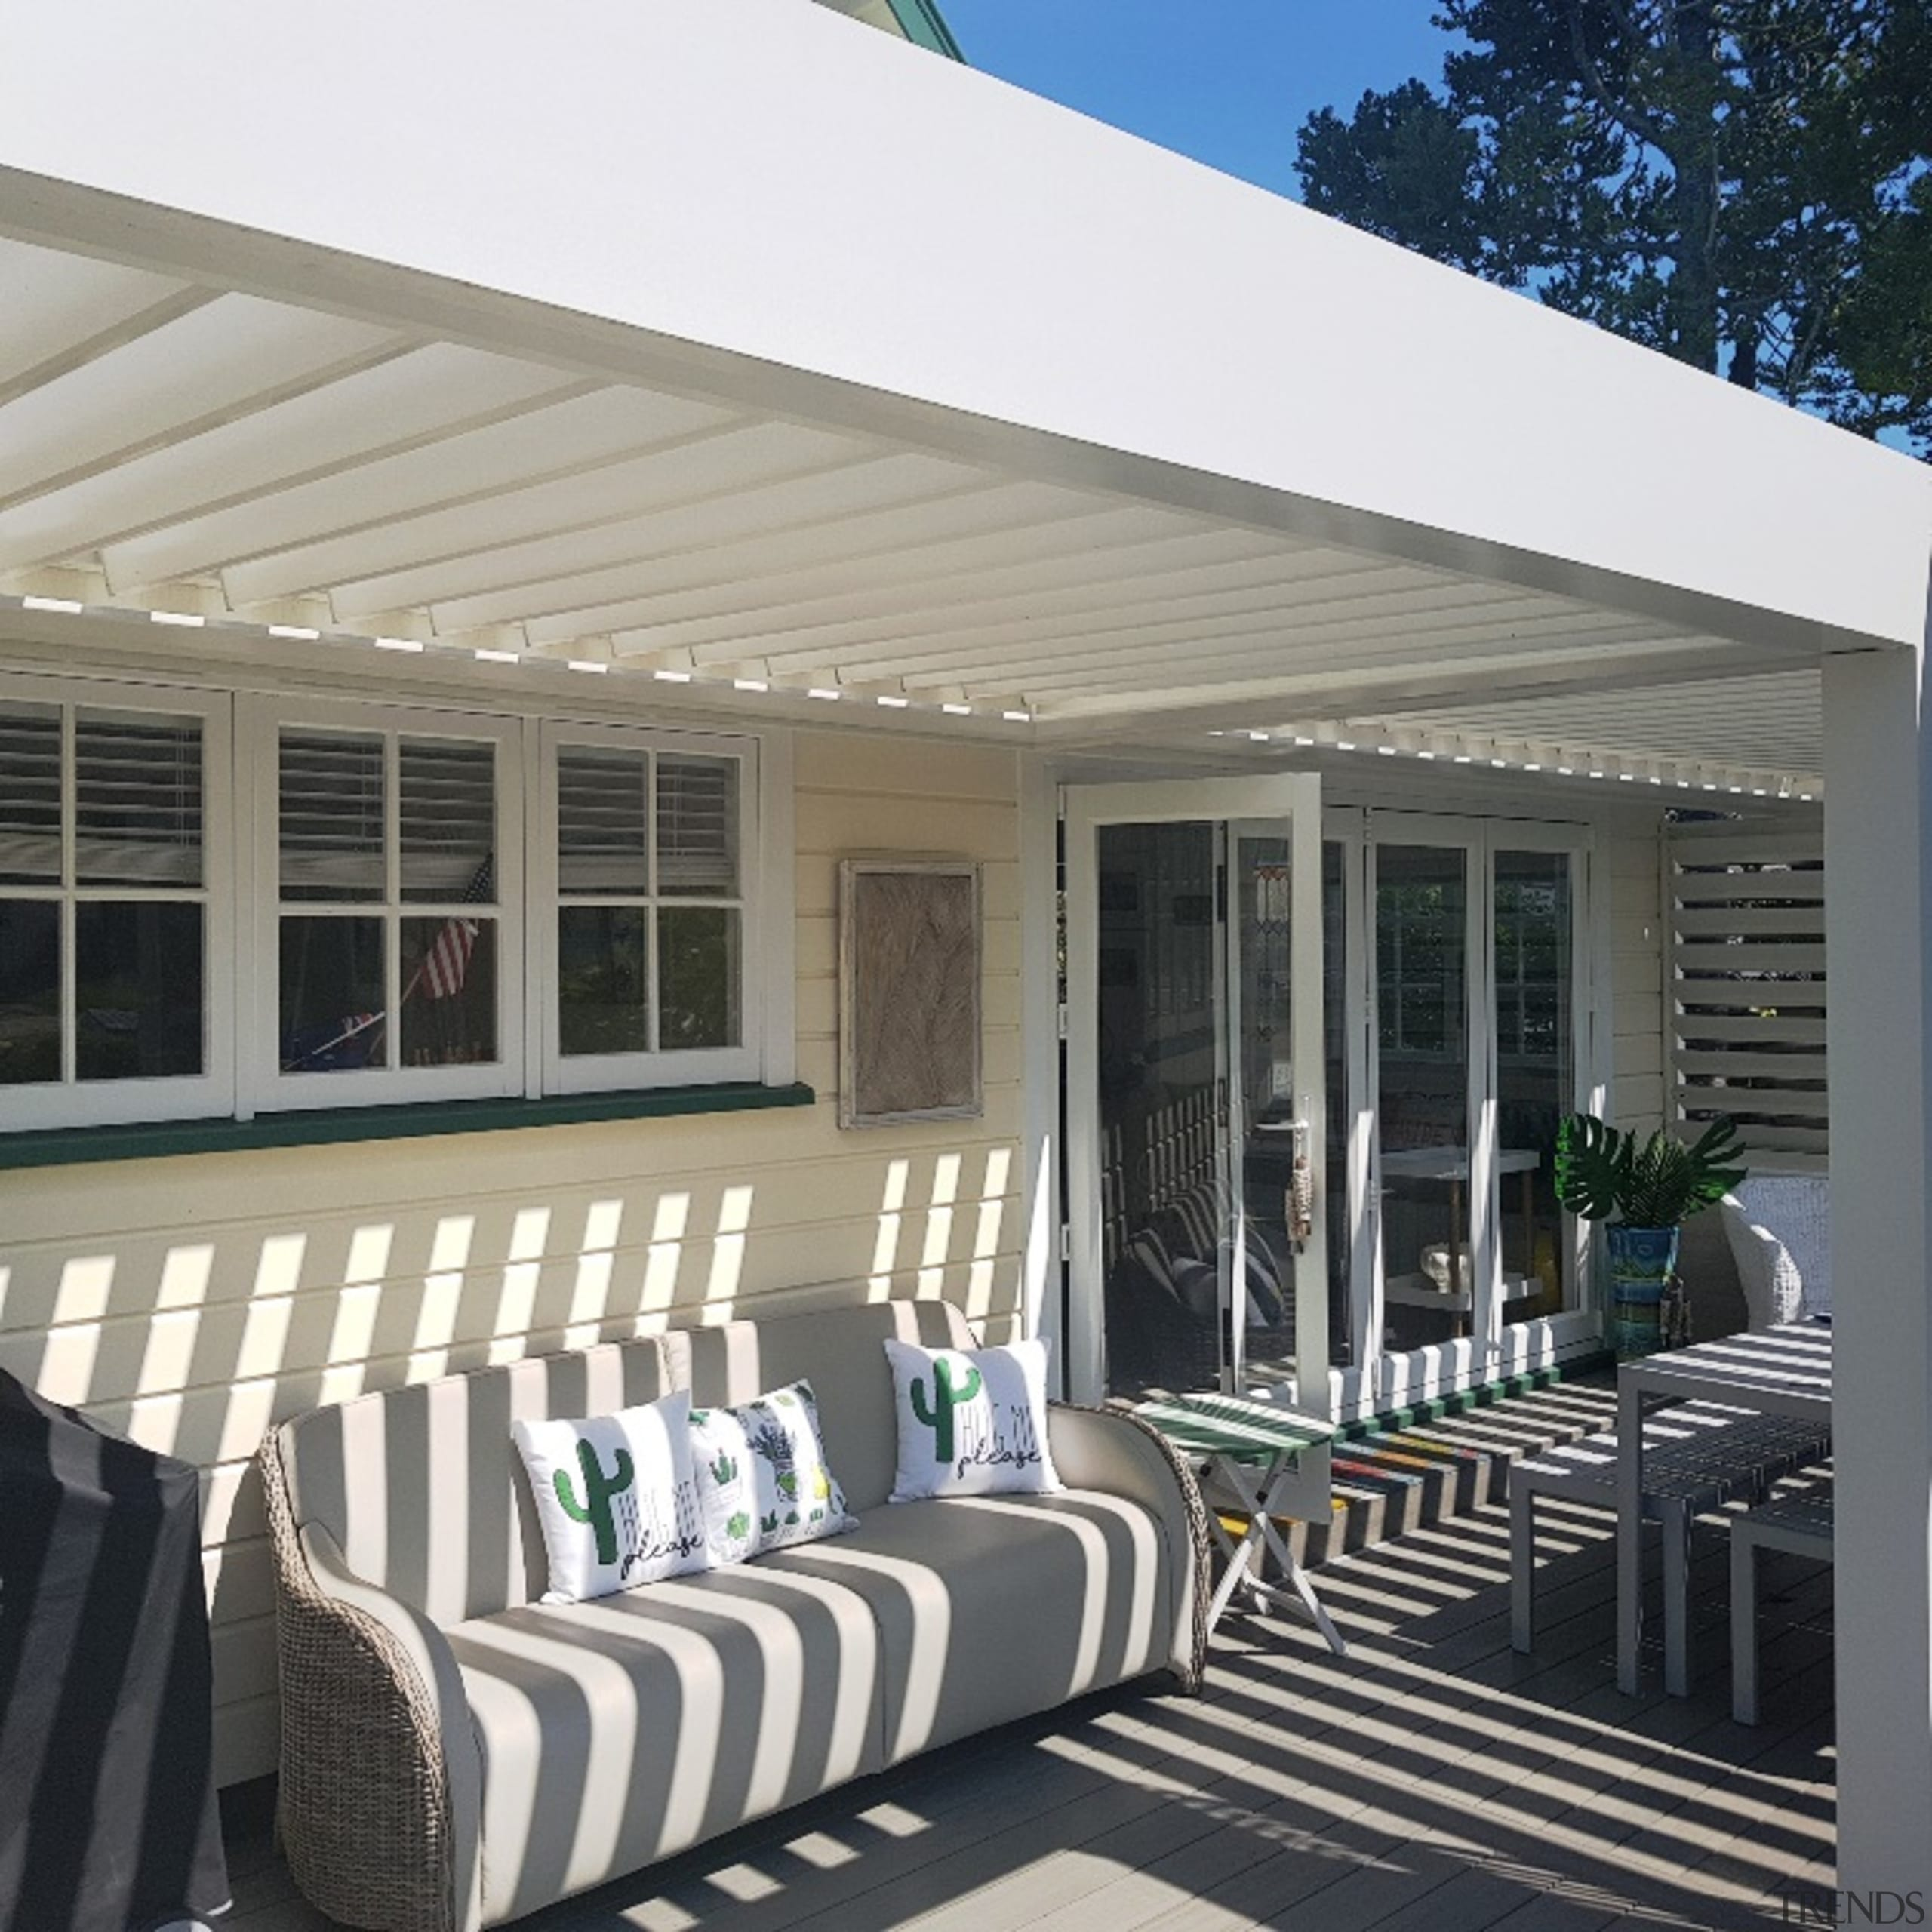 Outdoor Room creates more space for large, extended architecture, awning, building, deck, furniture, home, house, outdoor structure, patio, porch, property, real estate, roof, room, shade, siding, gray, black